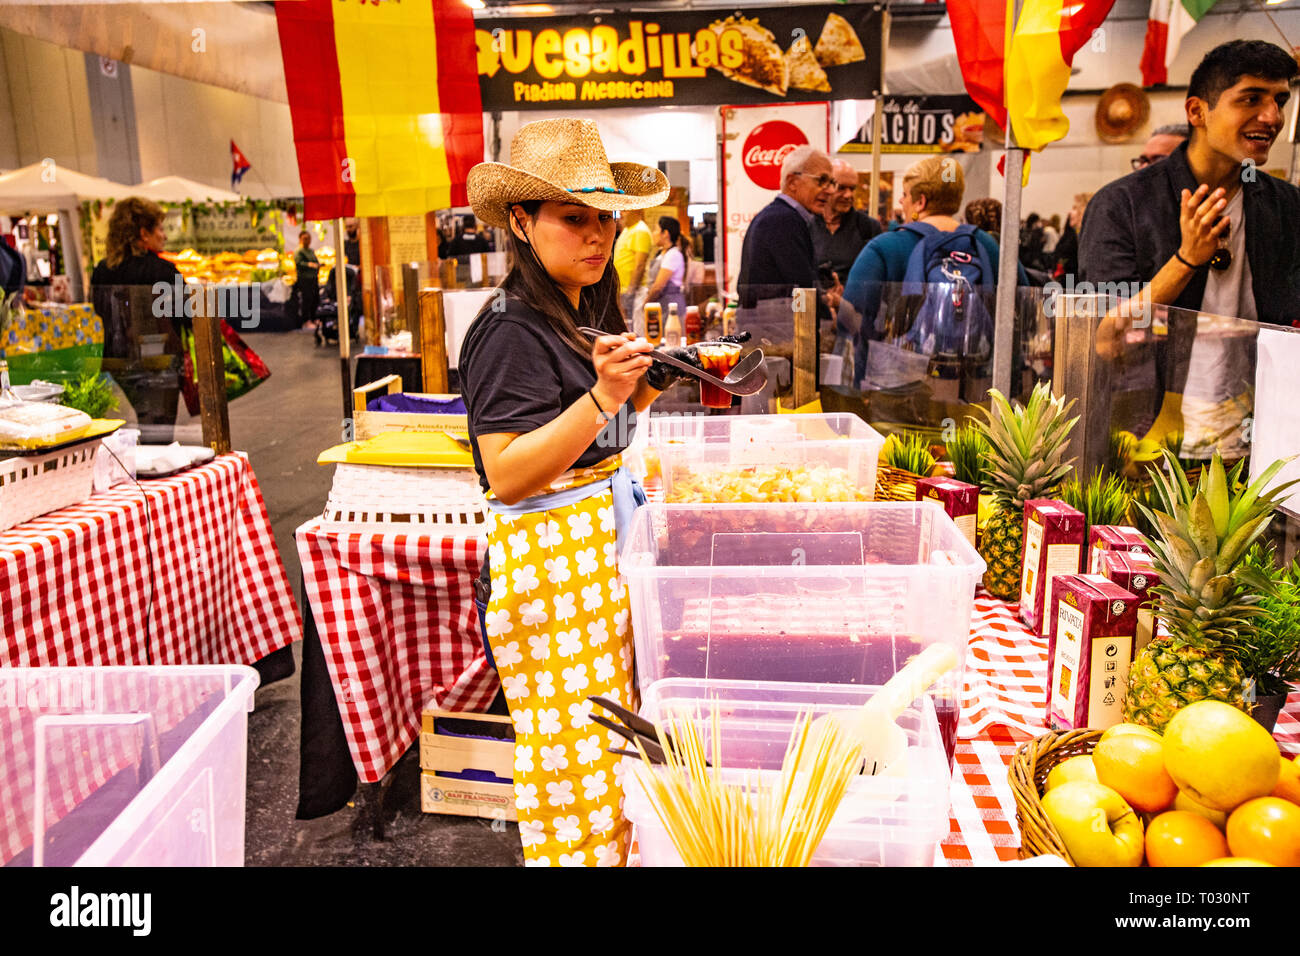 Spanish Festival - stand Sangria Credit: Realy Easy Star/Alamy Live